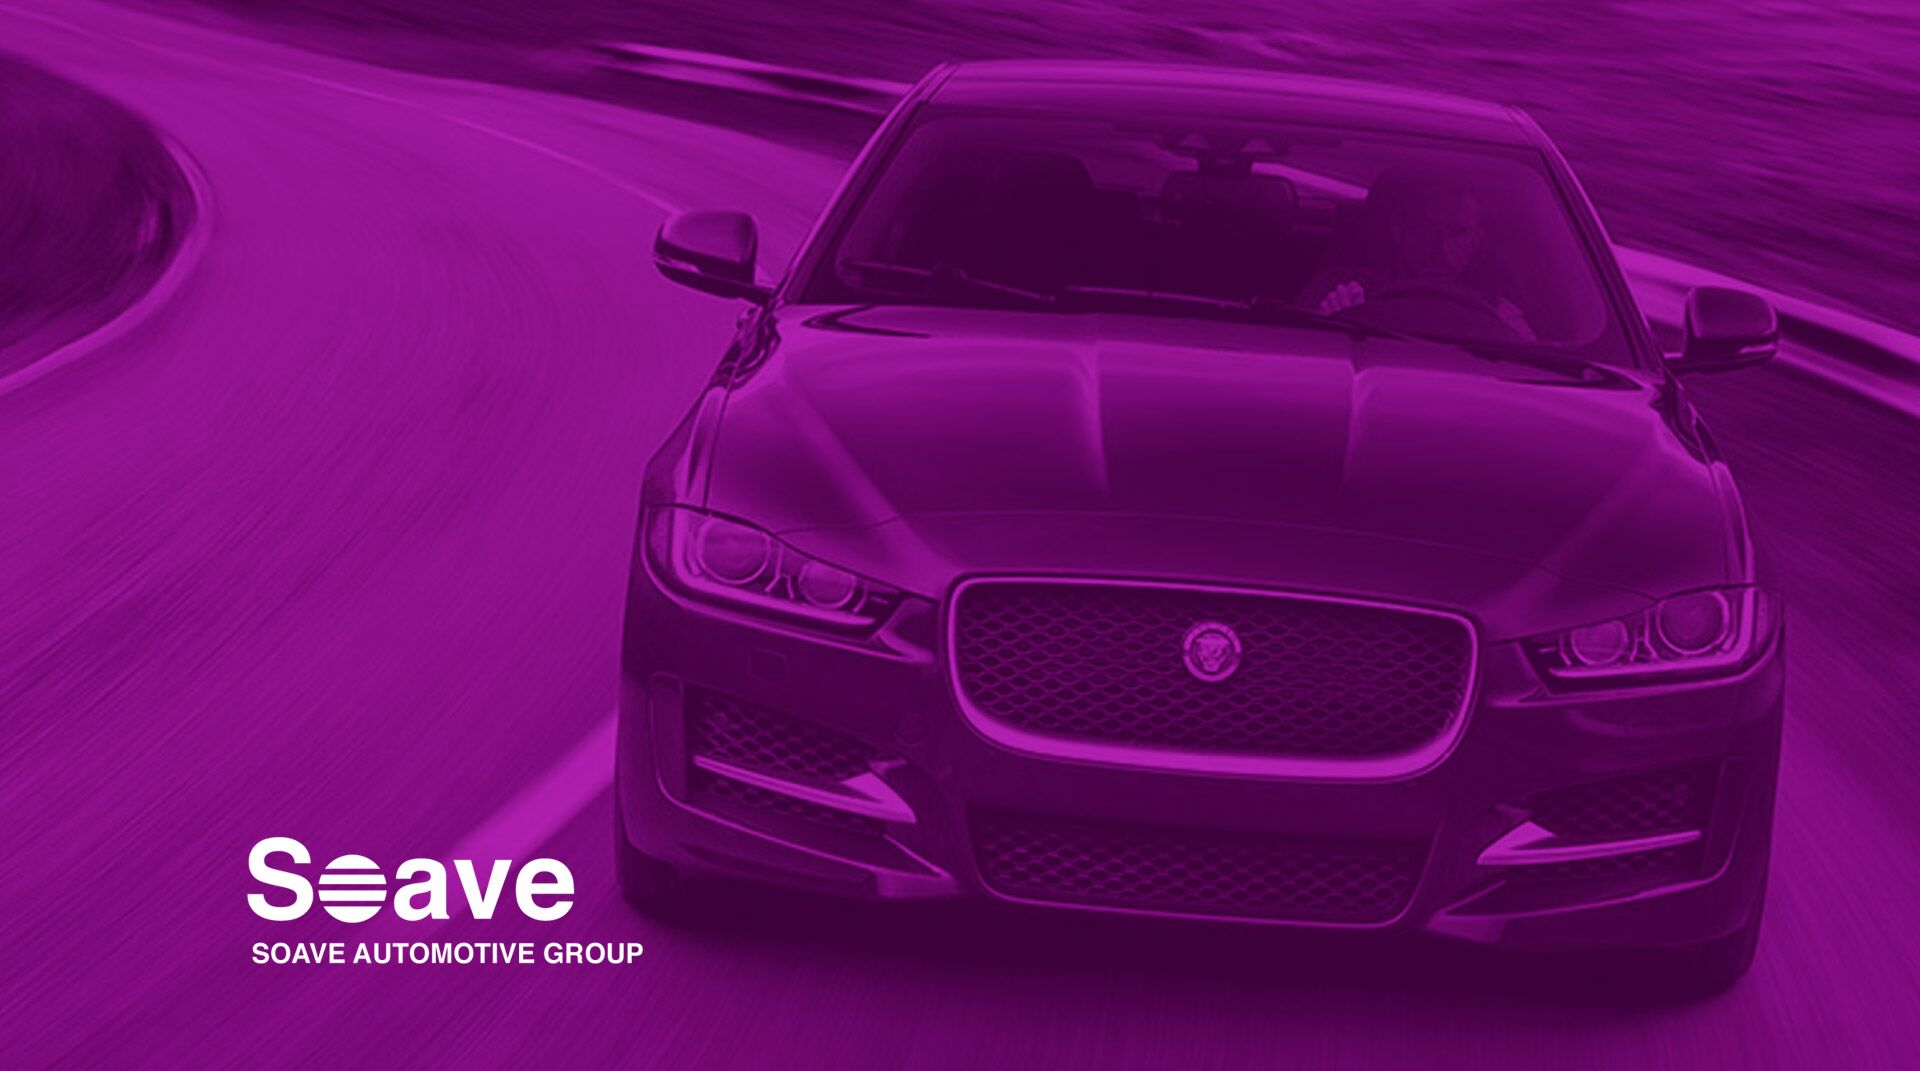 Soave Automotive Group